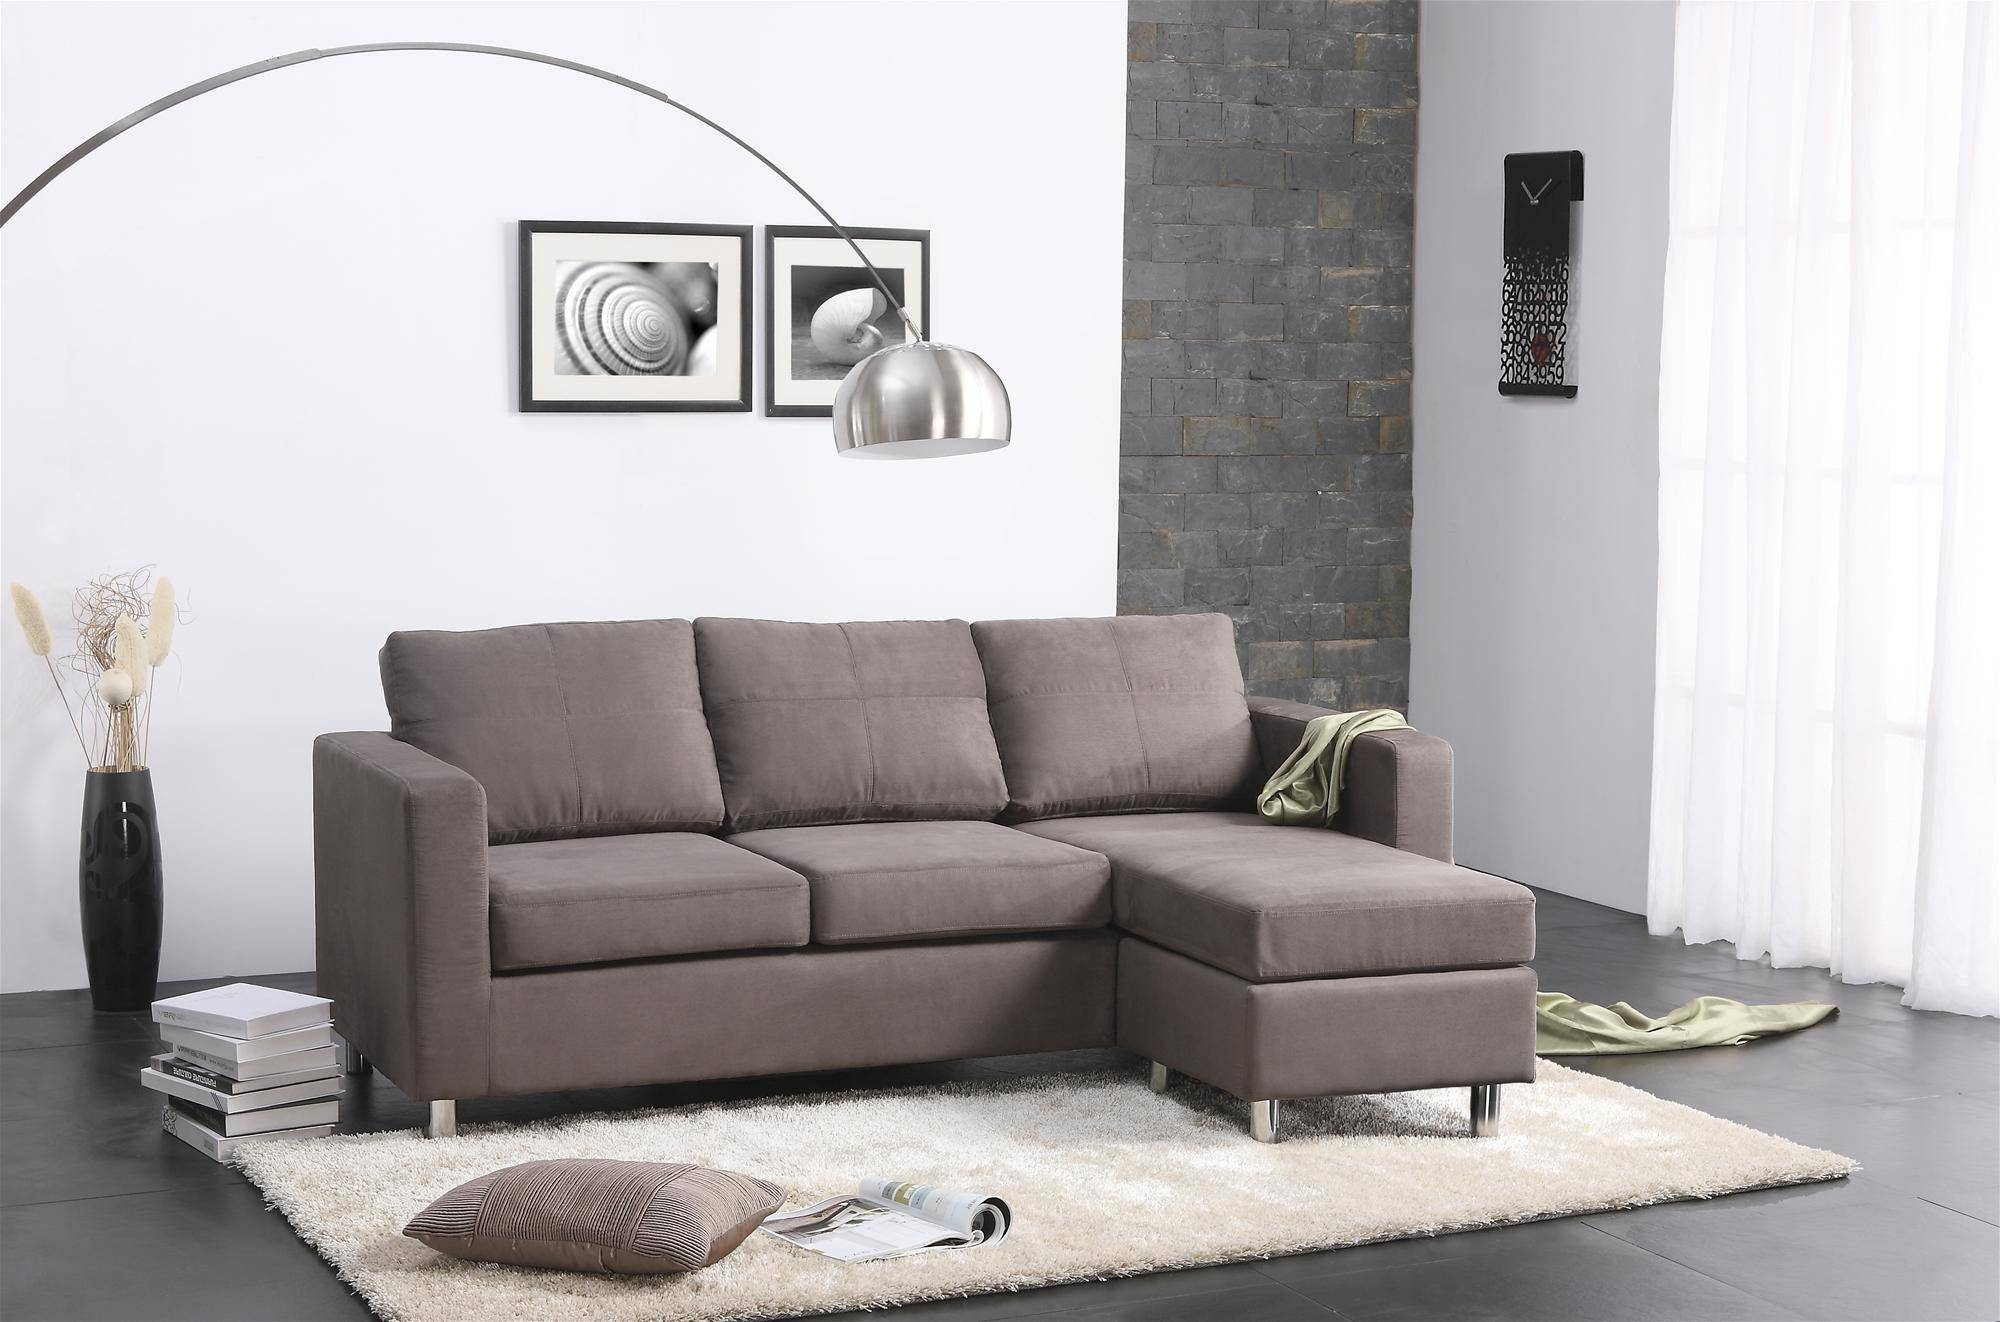 Excellent Sectional Sofas For Small Living Rooms 67 On Berkline for Berkline Sectional Sofa (Image 16 of 30)